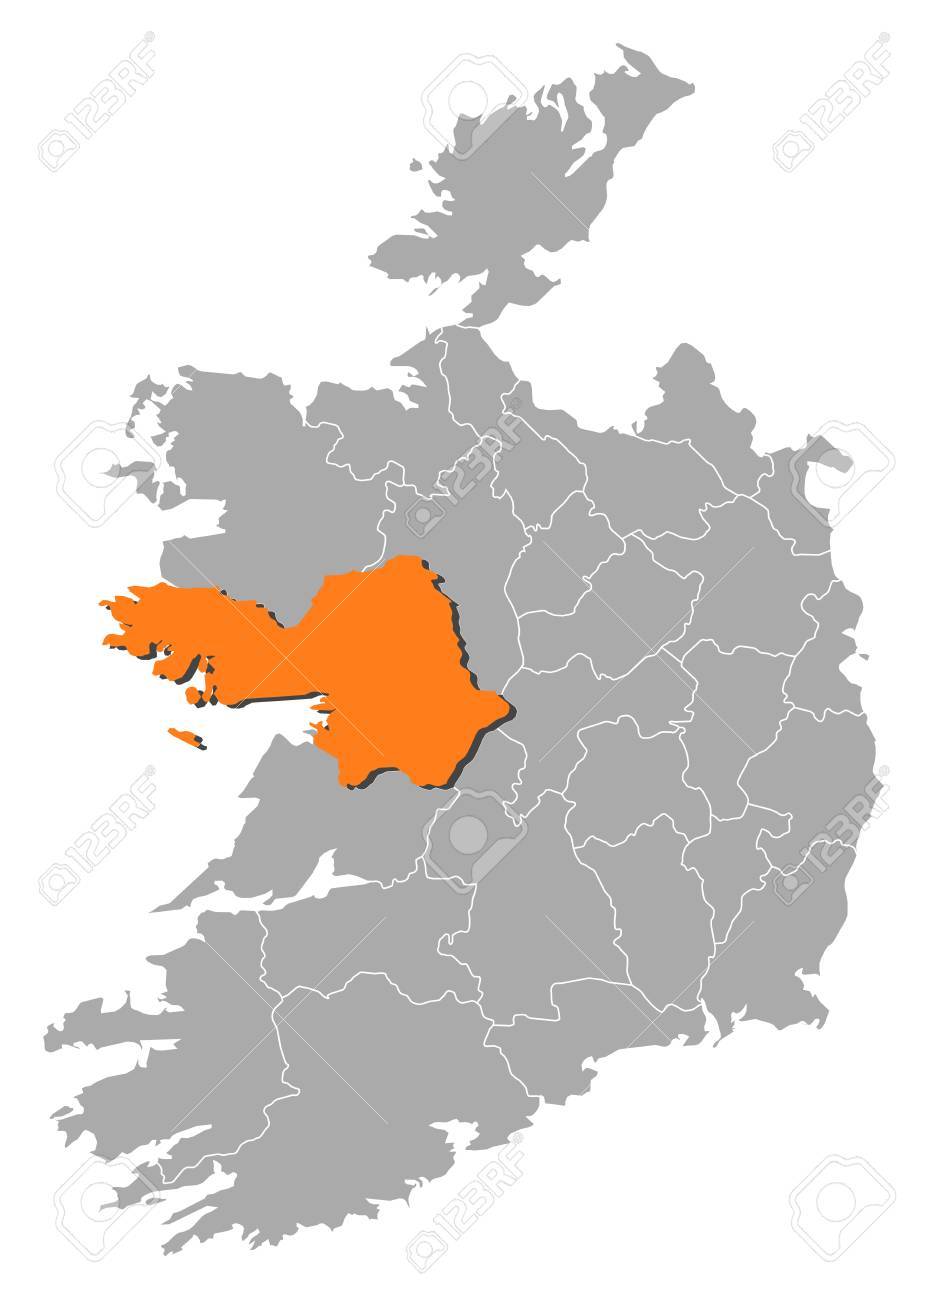 Galway On Map Of Ireland.Map Of Ireland With The Provinces Galway Is Highlighted By Orange